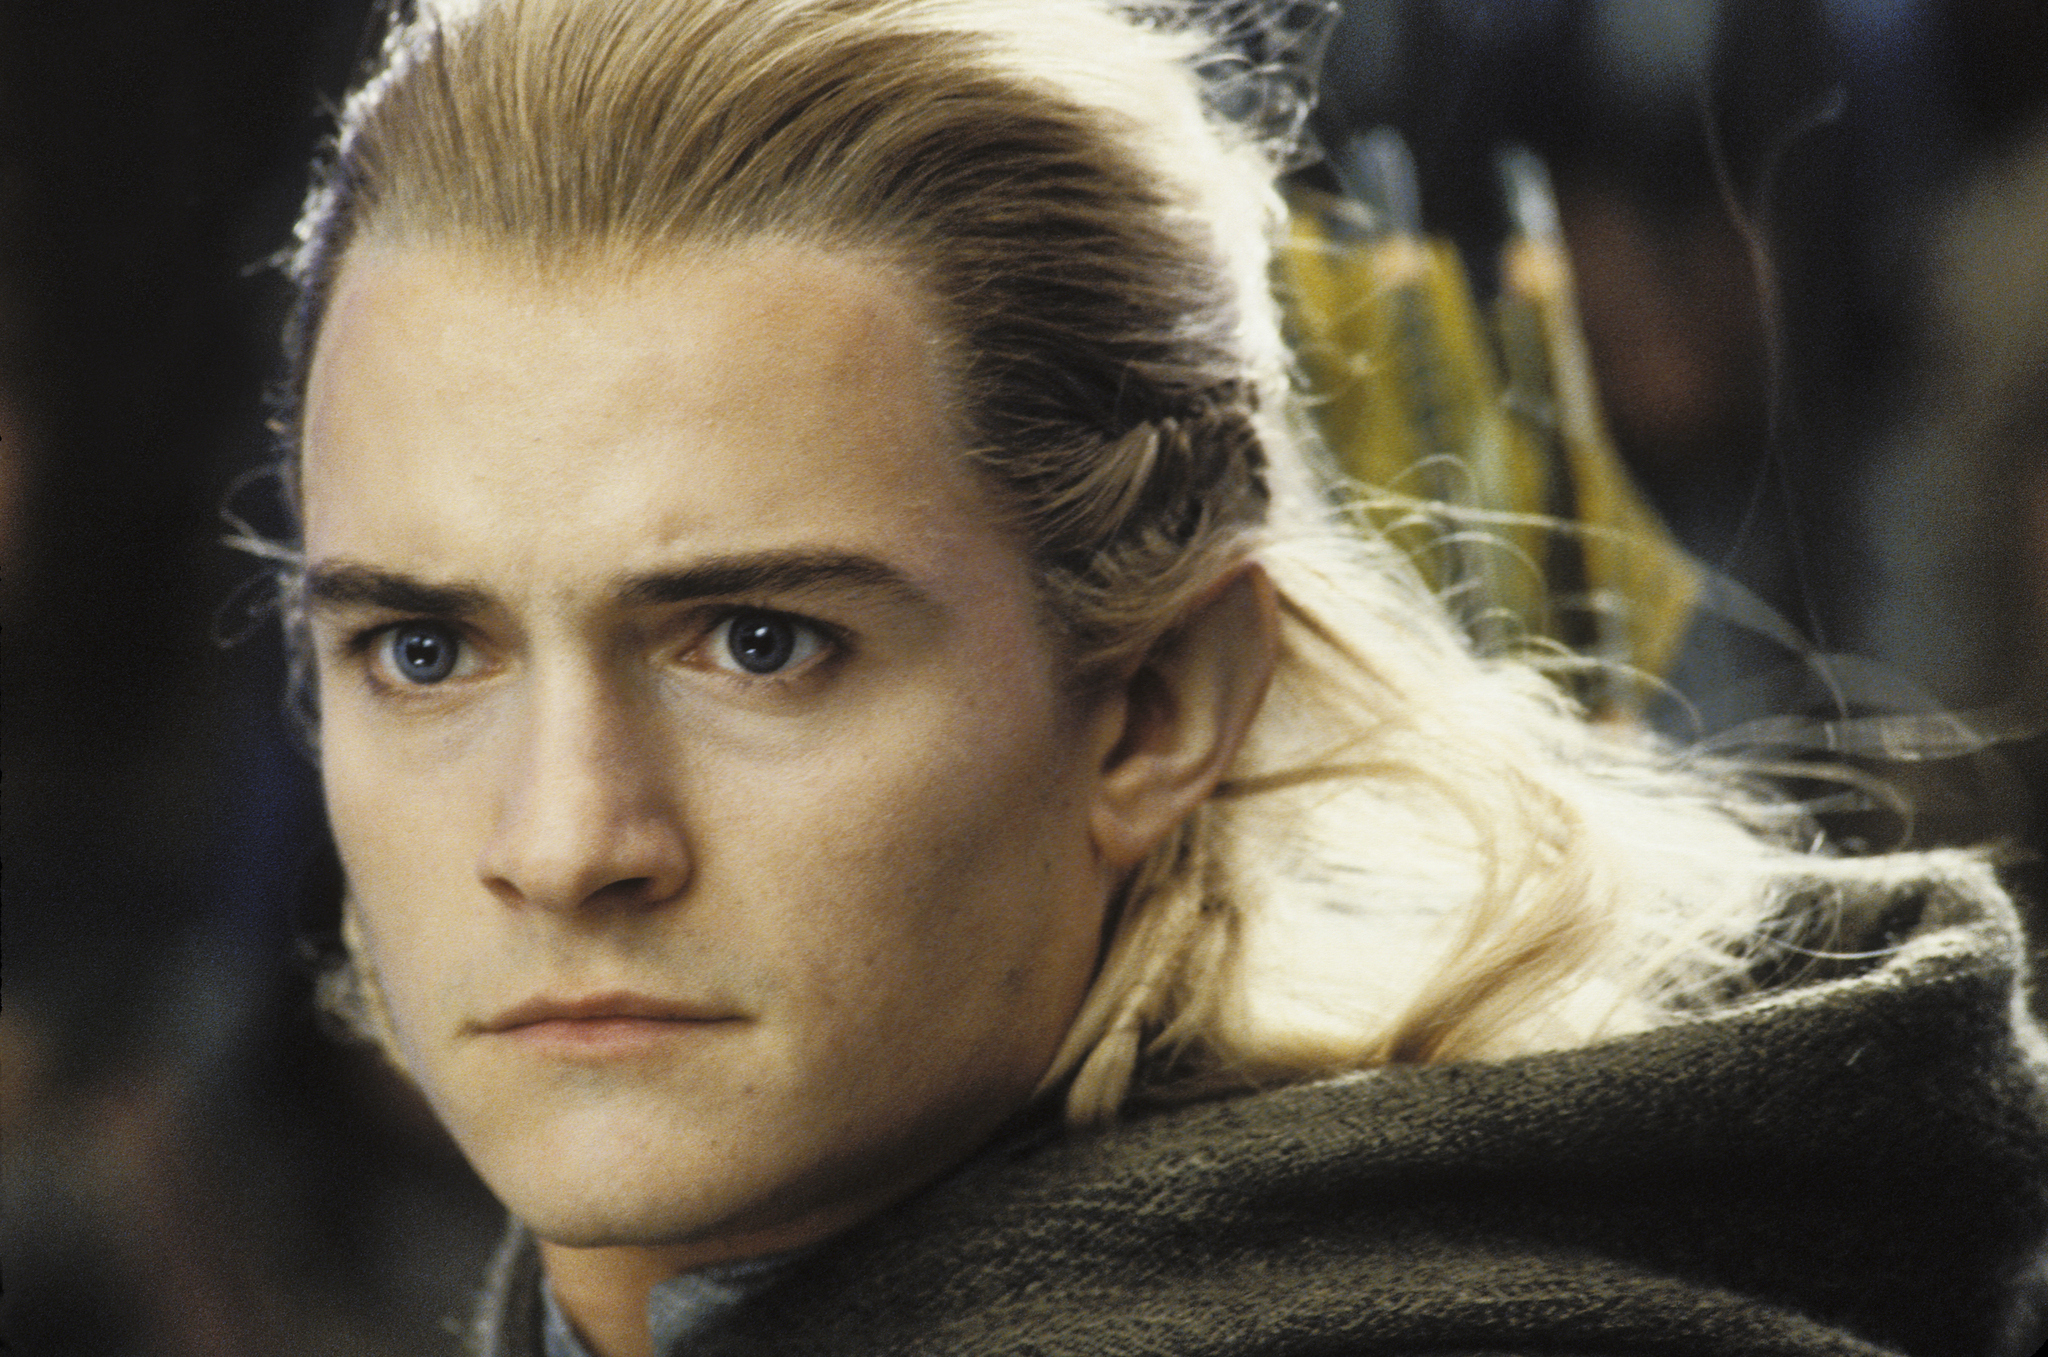 Orlando Bloom in The Lord of the Rings: The Return of the King (2003)